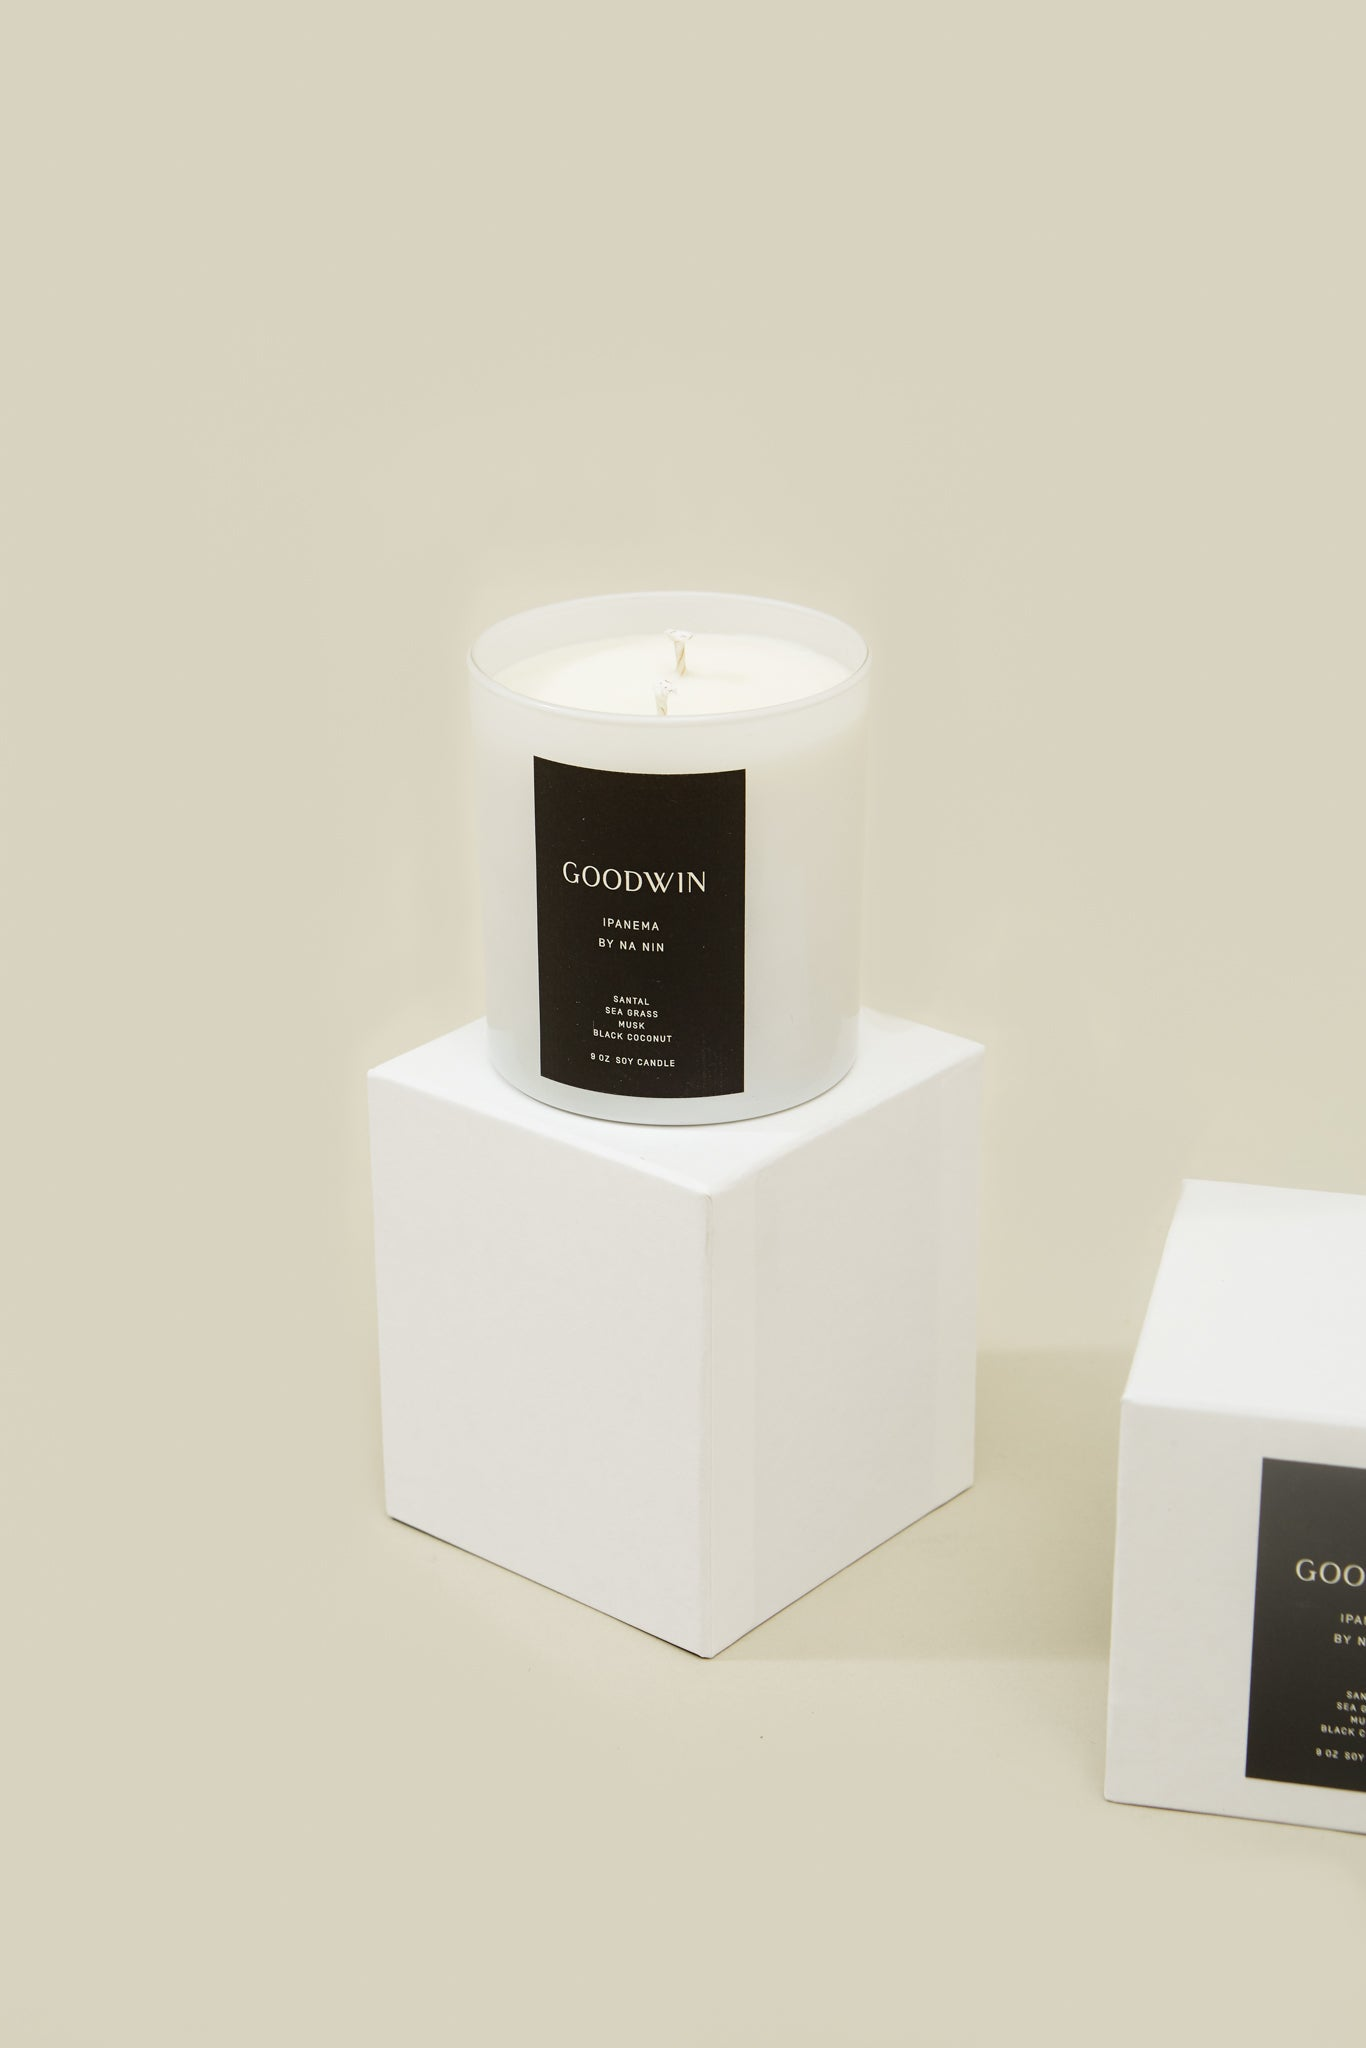 Goodwin Ipanema Candle